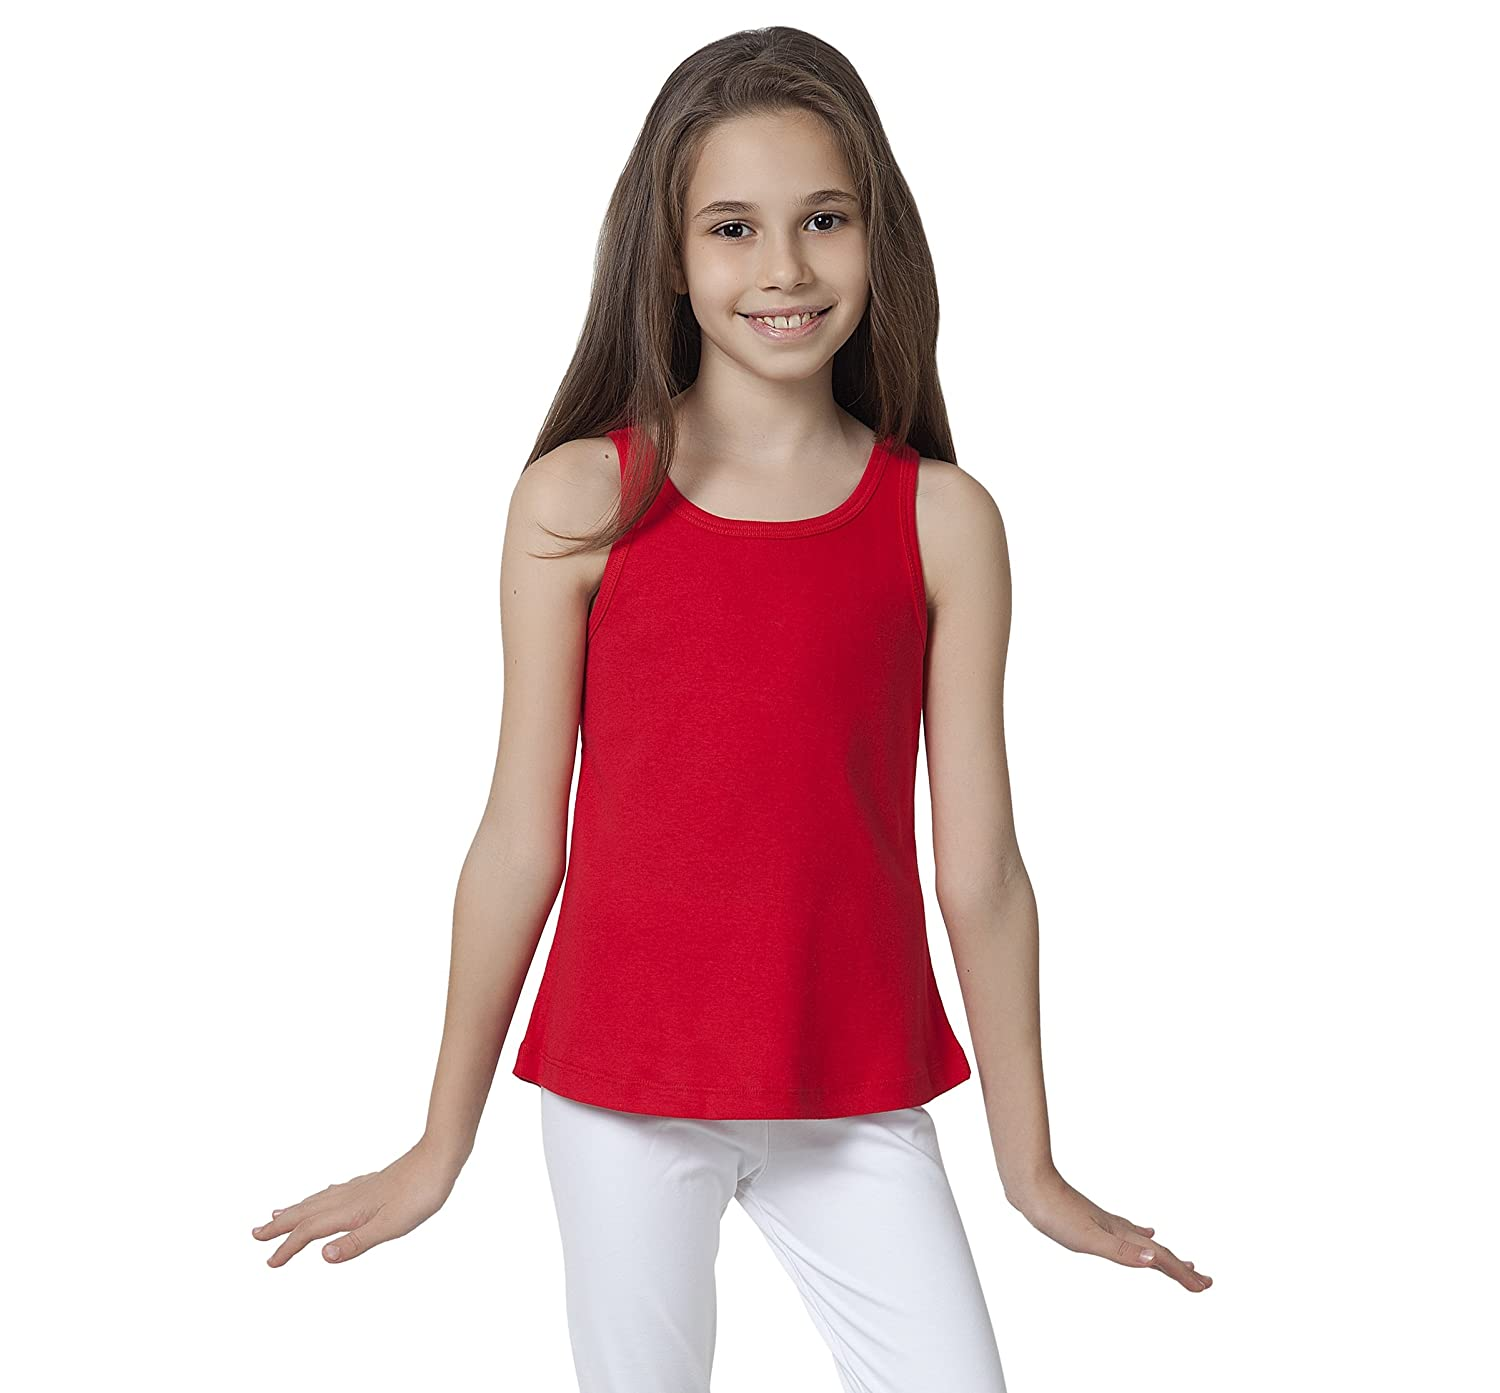 CAOMP Tank Tops Girls, Certified Organic Cotton, Sleeveless, Ribbed Tees.